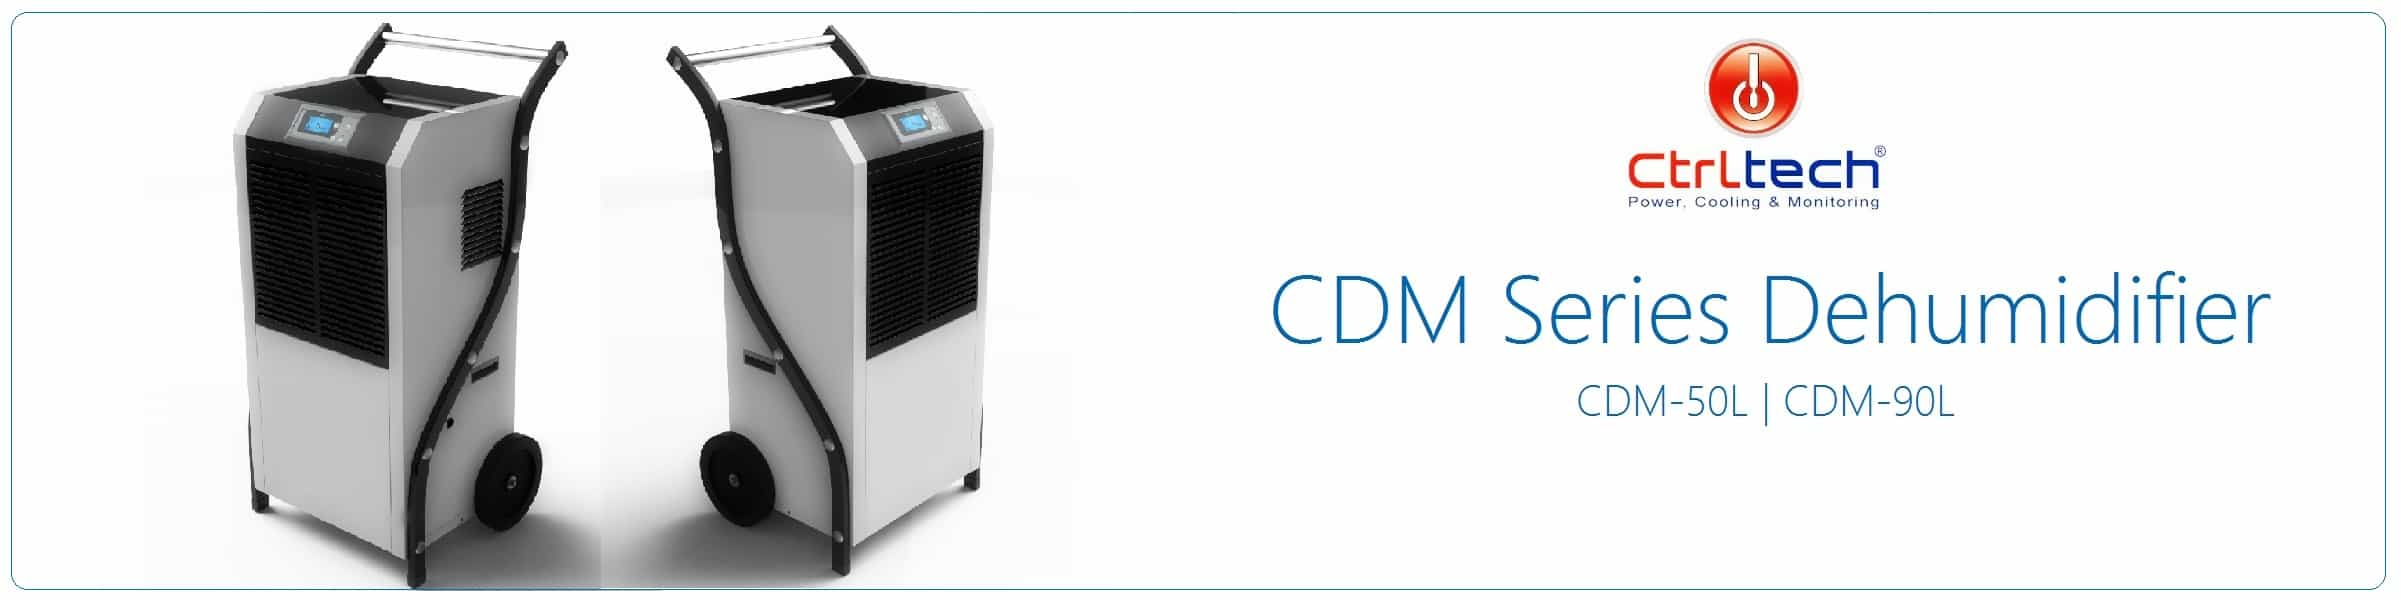 CDM series Industrial dehumidifier.